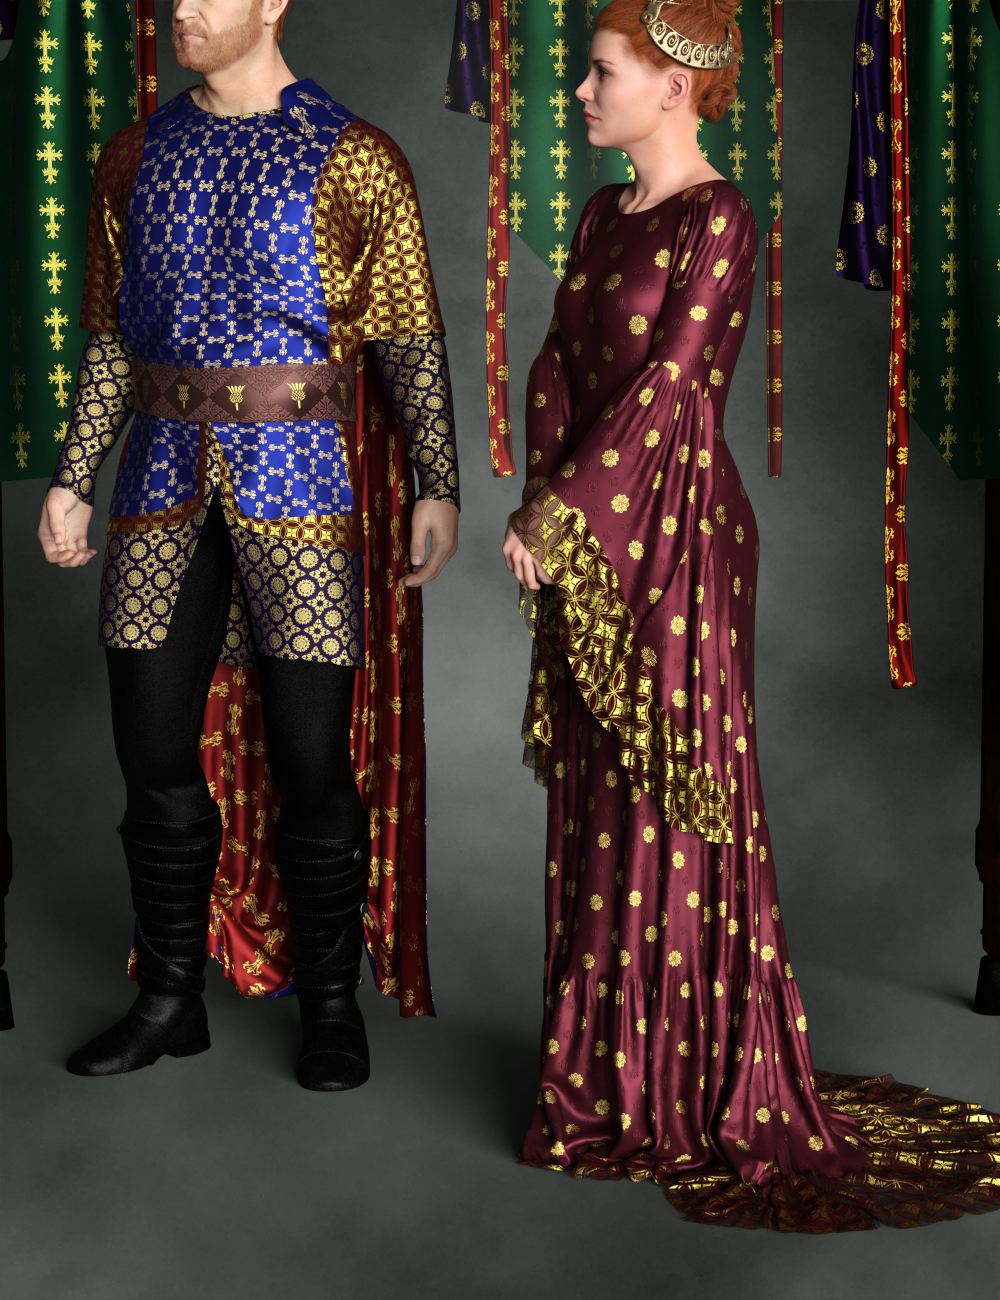 Regal Riches: Historical Pattern Iray Shader Presets by: Inkara, 3D Models by Daz 3D